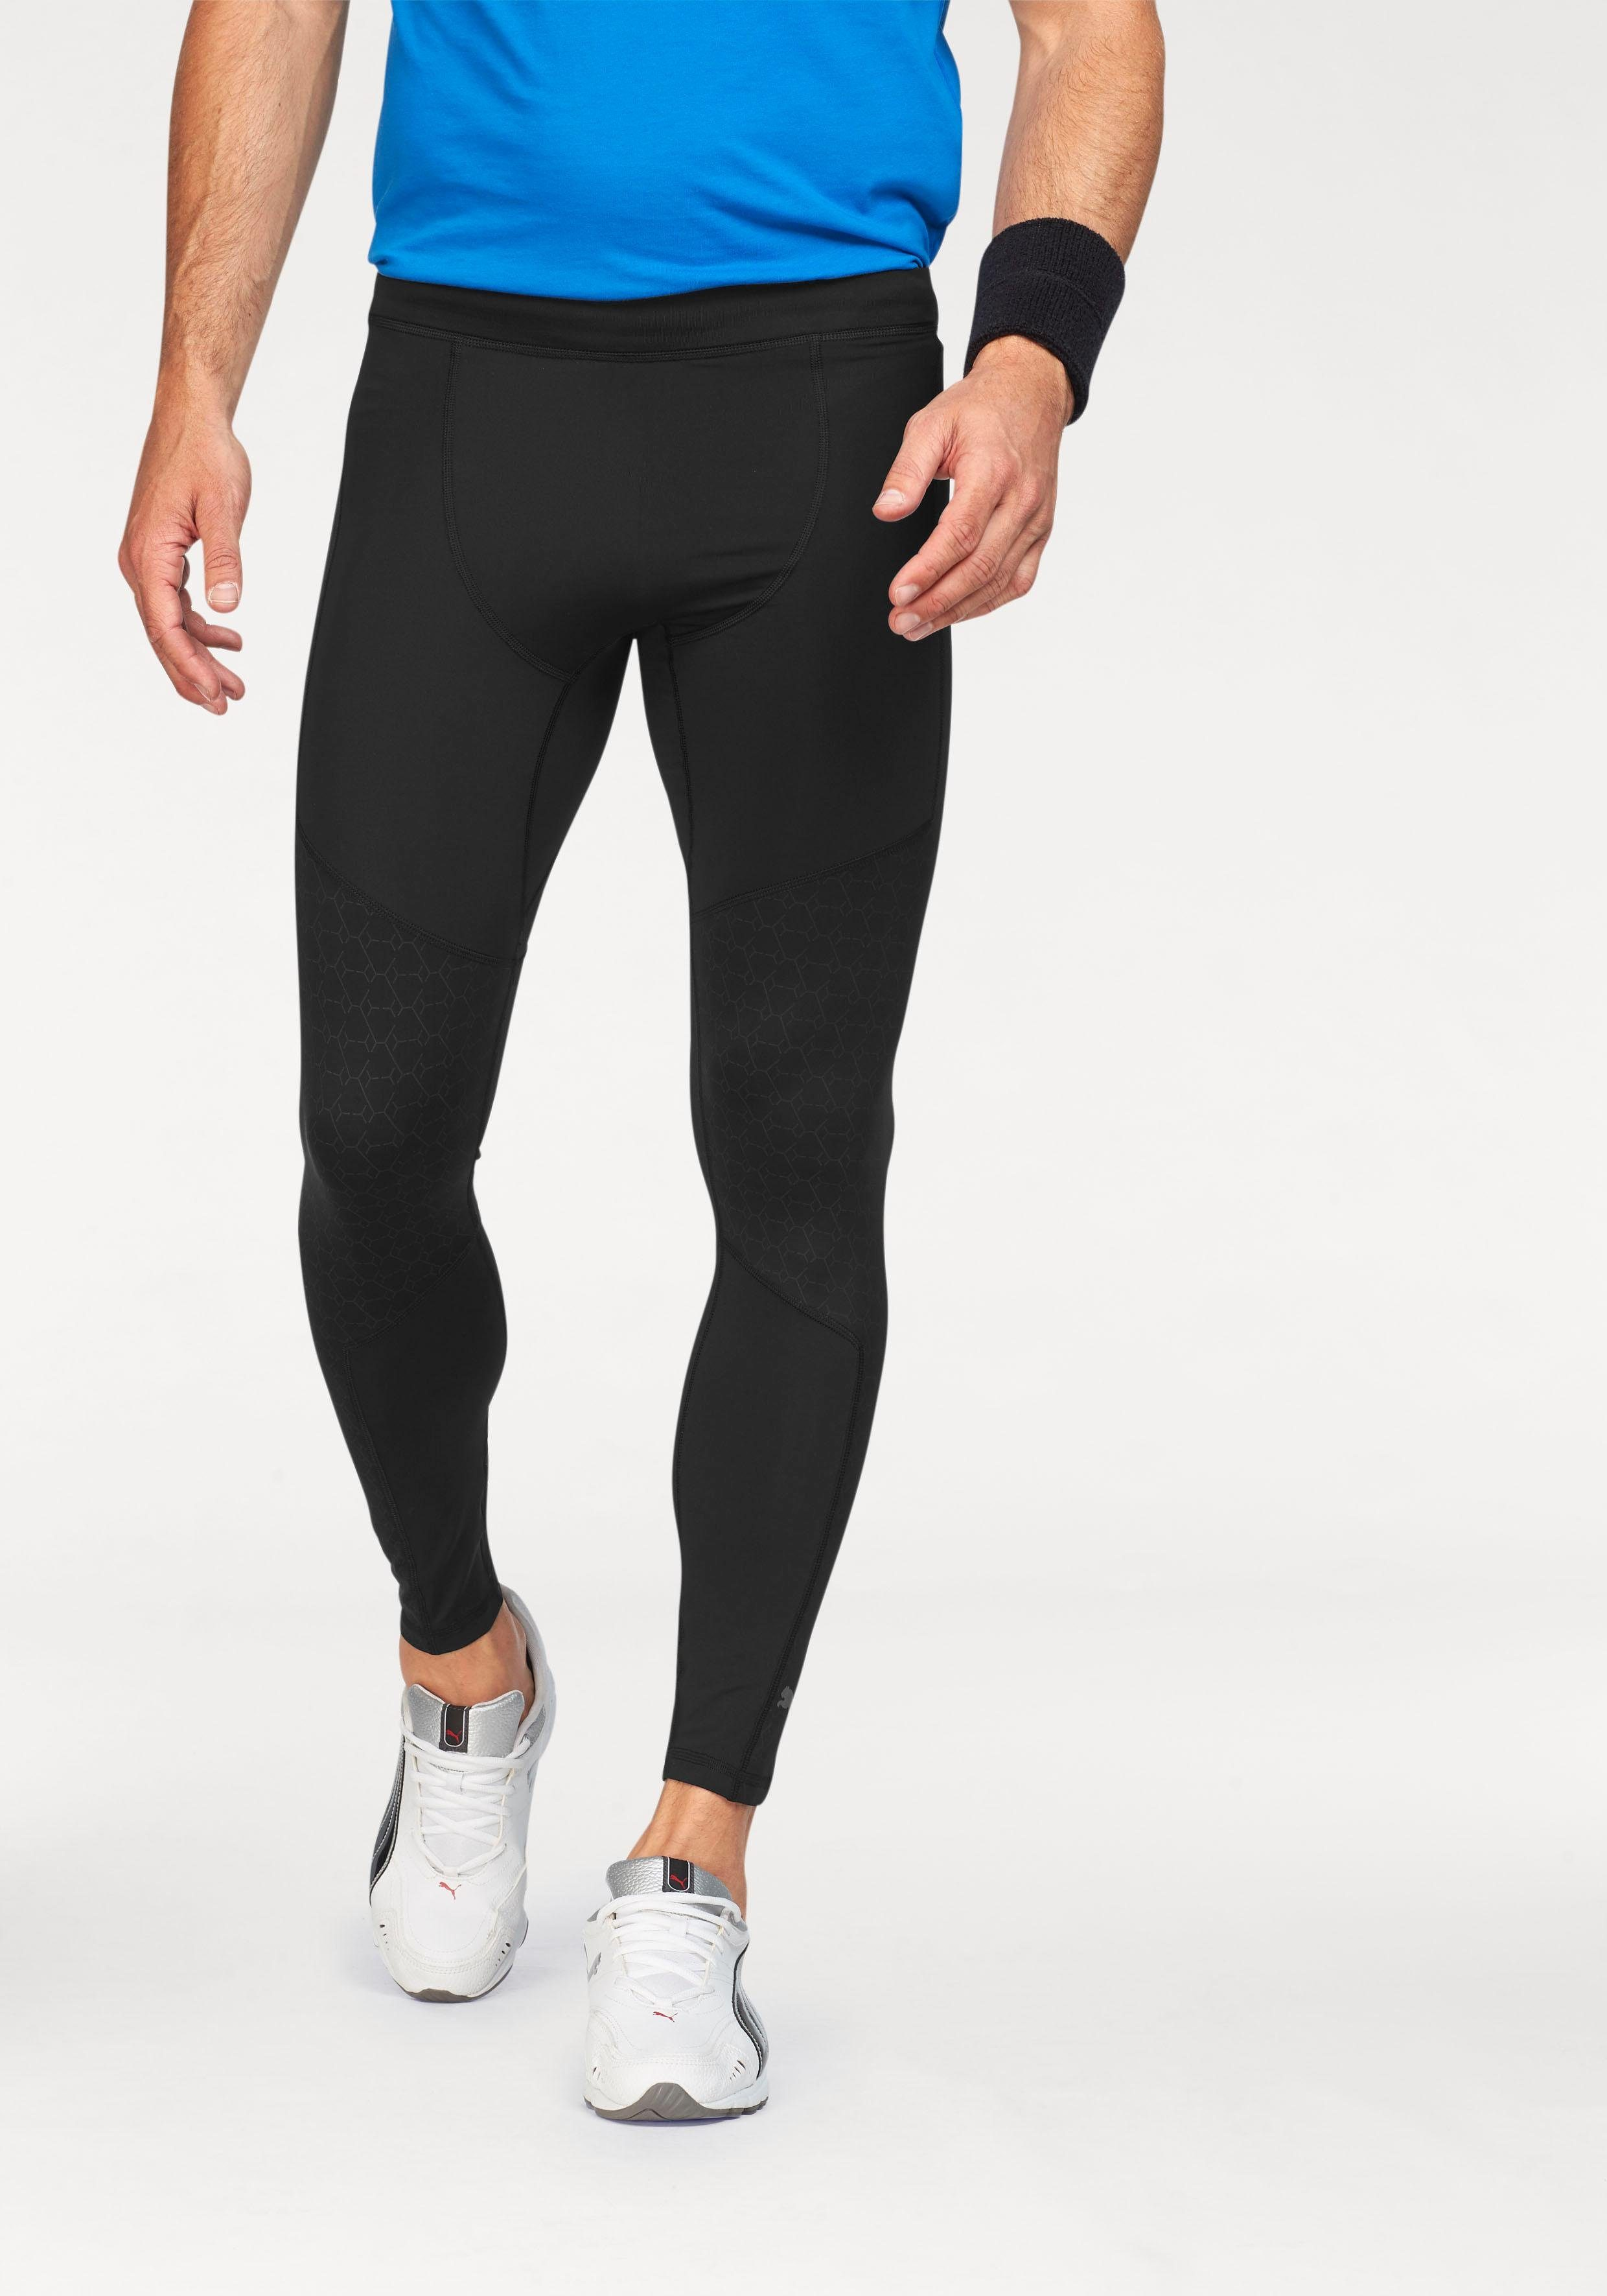 PUMA Funktionstights »ENERGY TECH TIGHT«